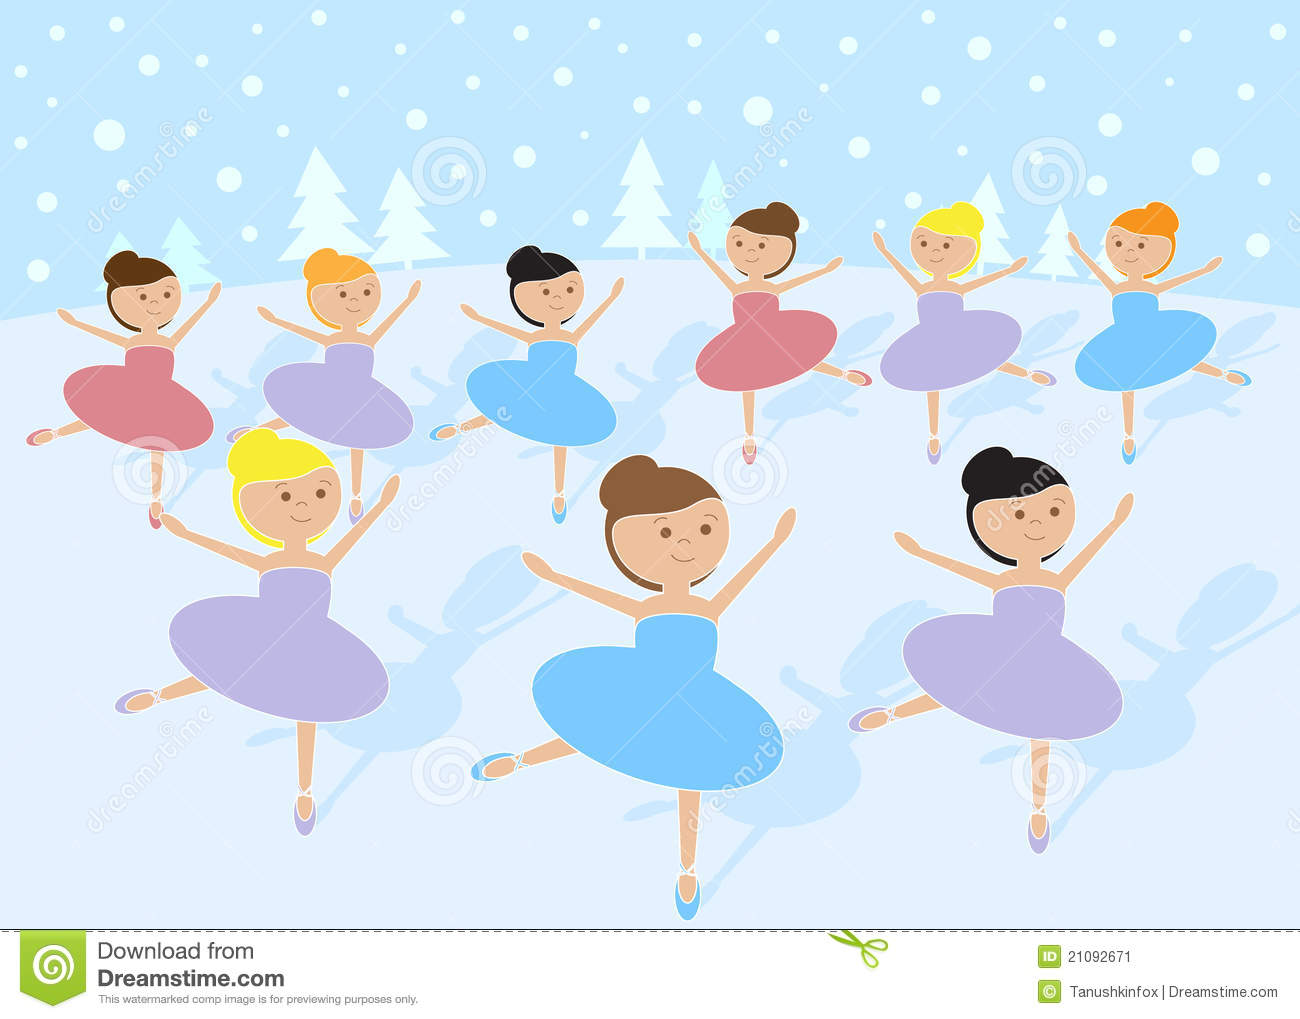 12 Days Of Christmas: 9 Ladies Dancing Stock Image - Image: 21092671